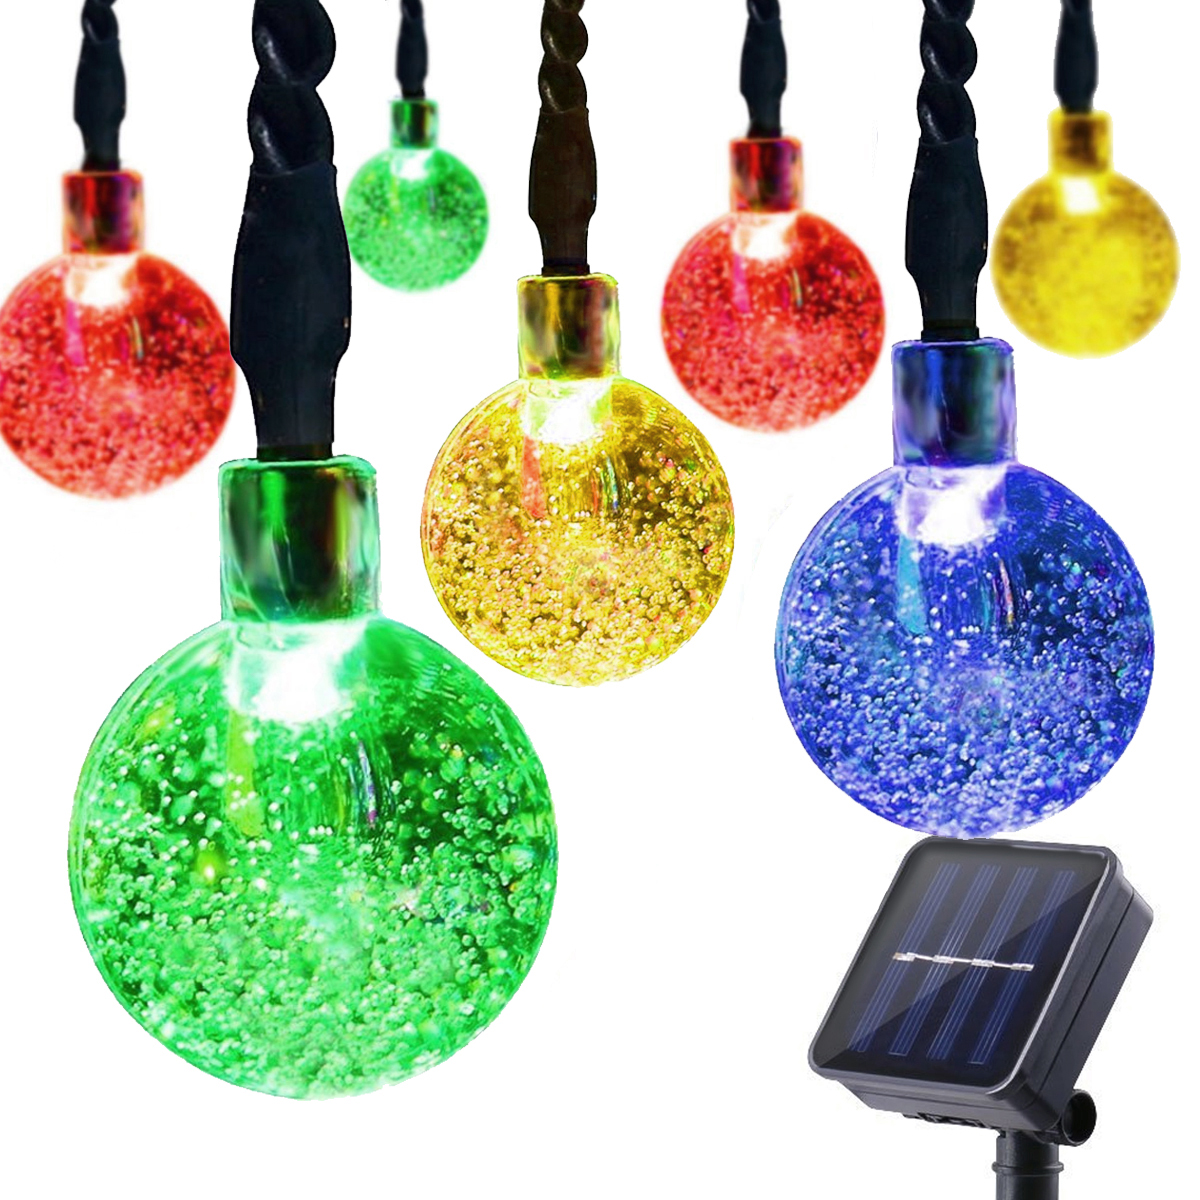 Dcoo Solar String Lights Globe Ball 30 LED Lighting Sloar Powered String Party Outdoor Lights String Wedding Decoration Colorful